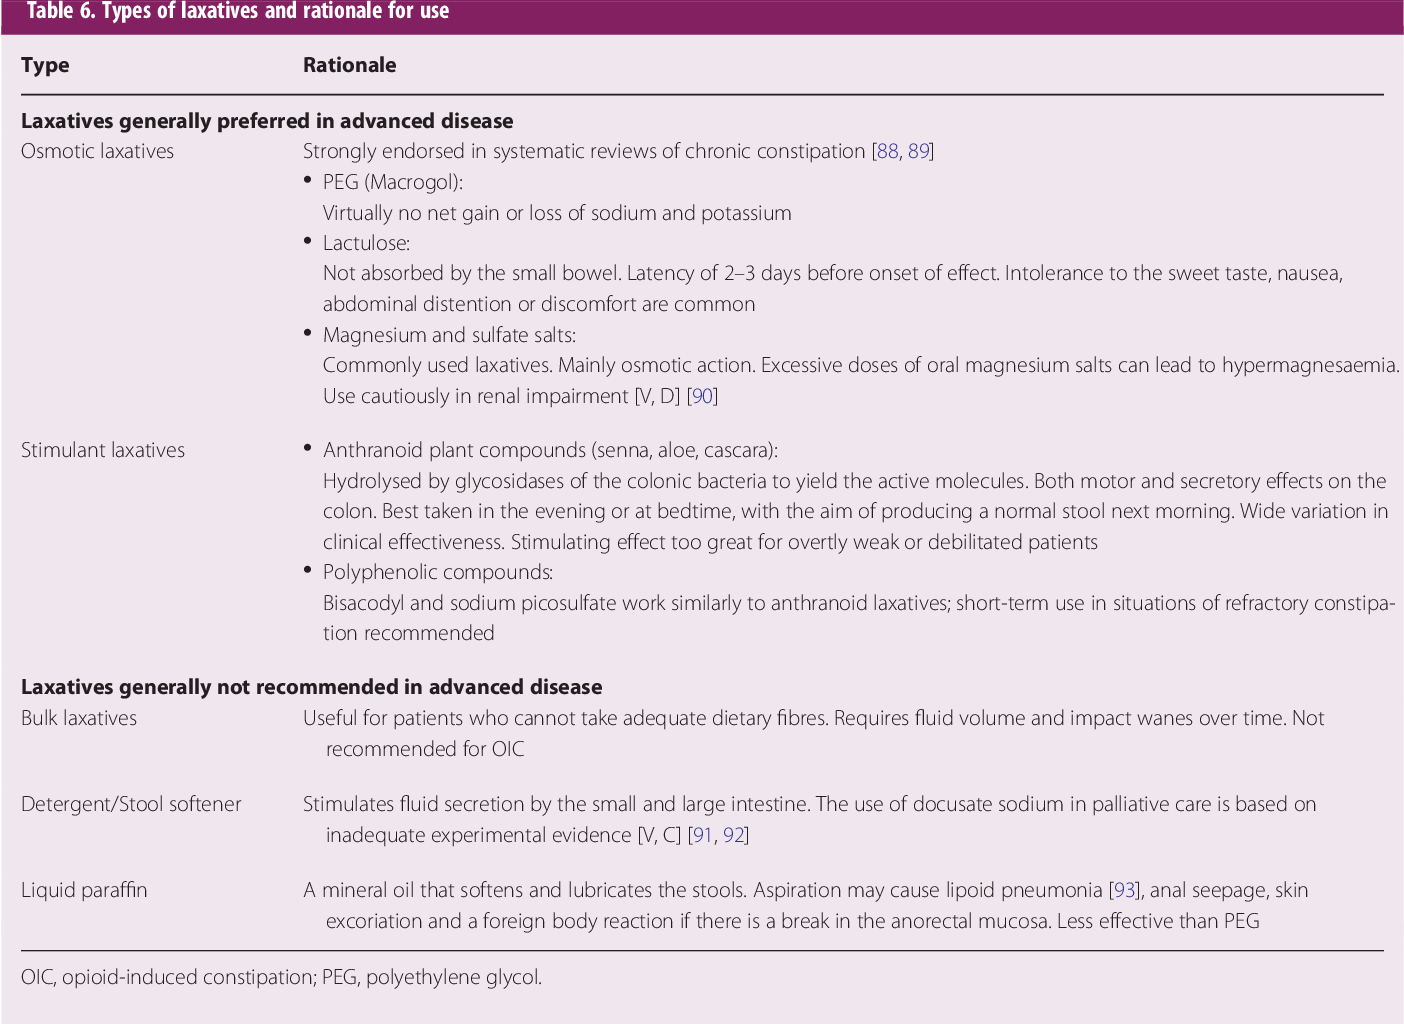 Table 6 from Diagnosis, assessment and management of